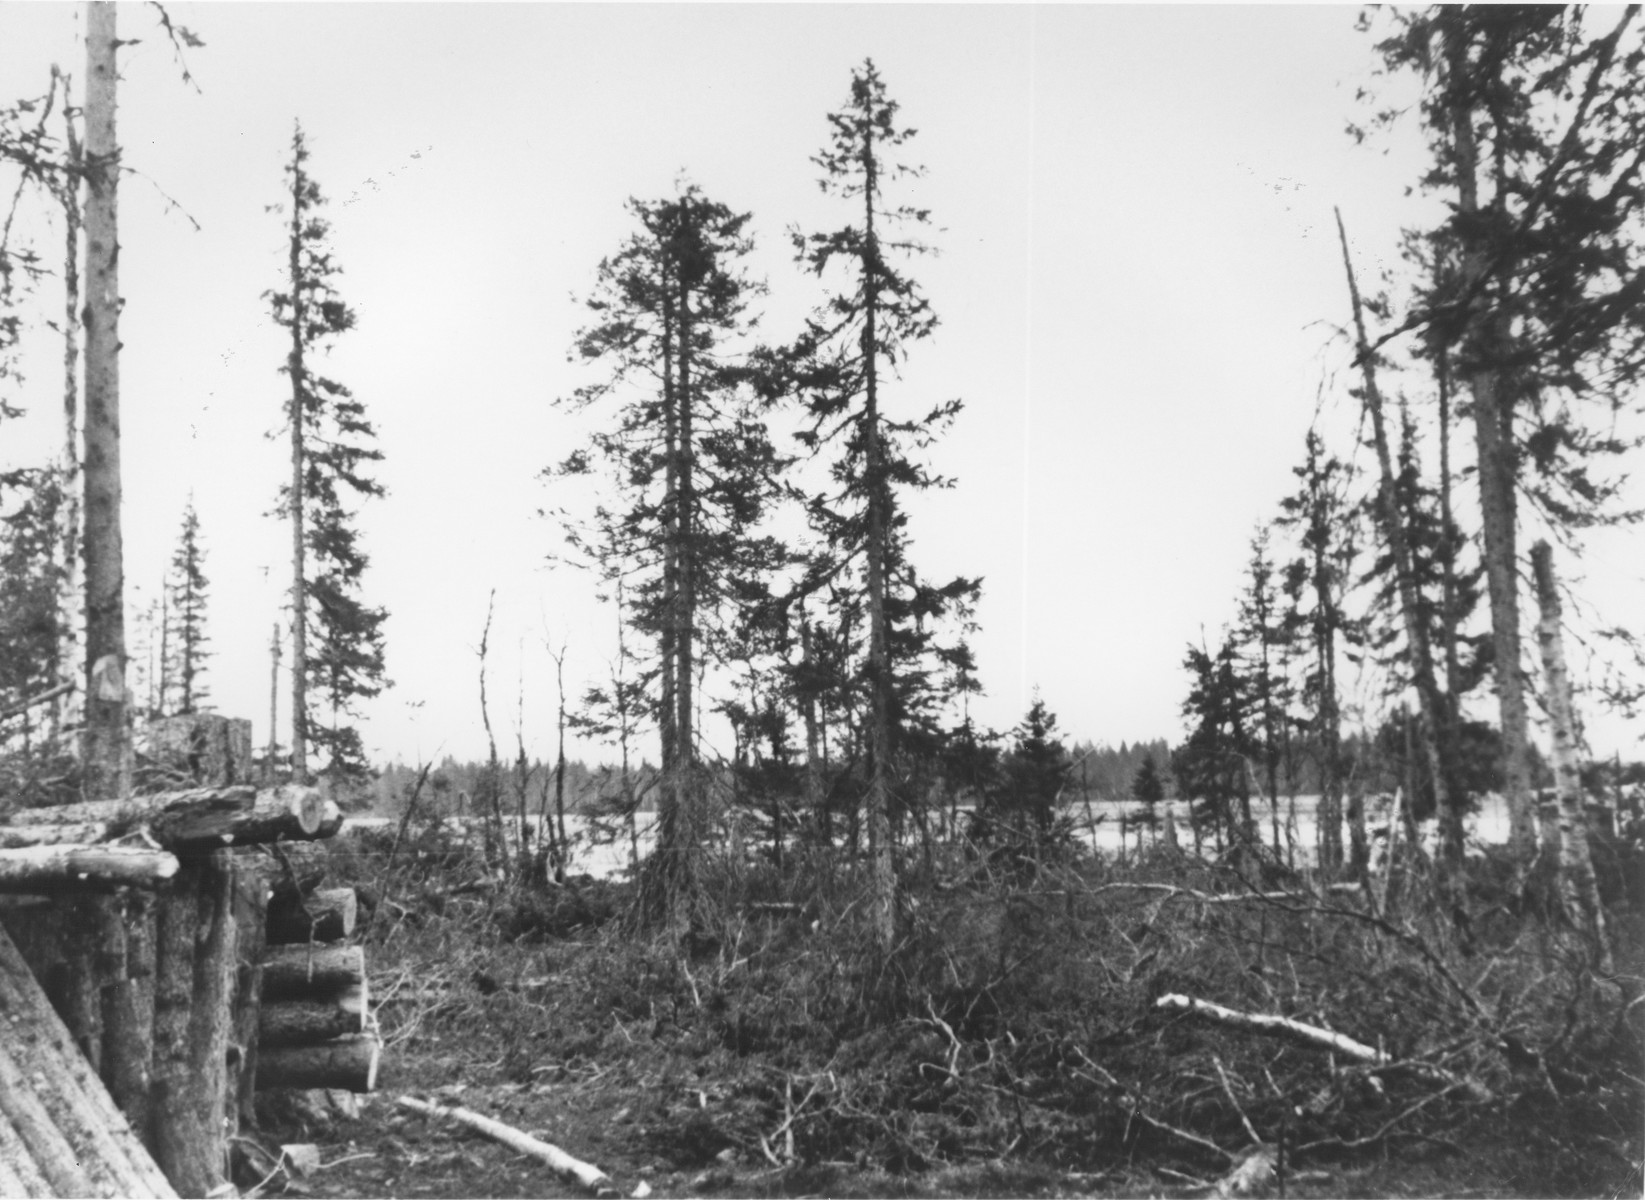 """View of an SS bunker in a forest in the Karelia region of Finland.  The inscription on the photo reads: """"The corner bunker controls the 500M over the lake, where the enemy is entrenched on a forested island.  War reporter Wisniewski."""